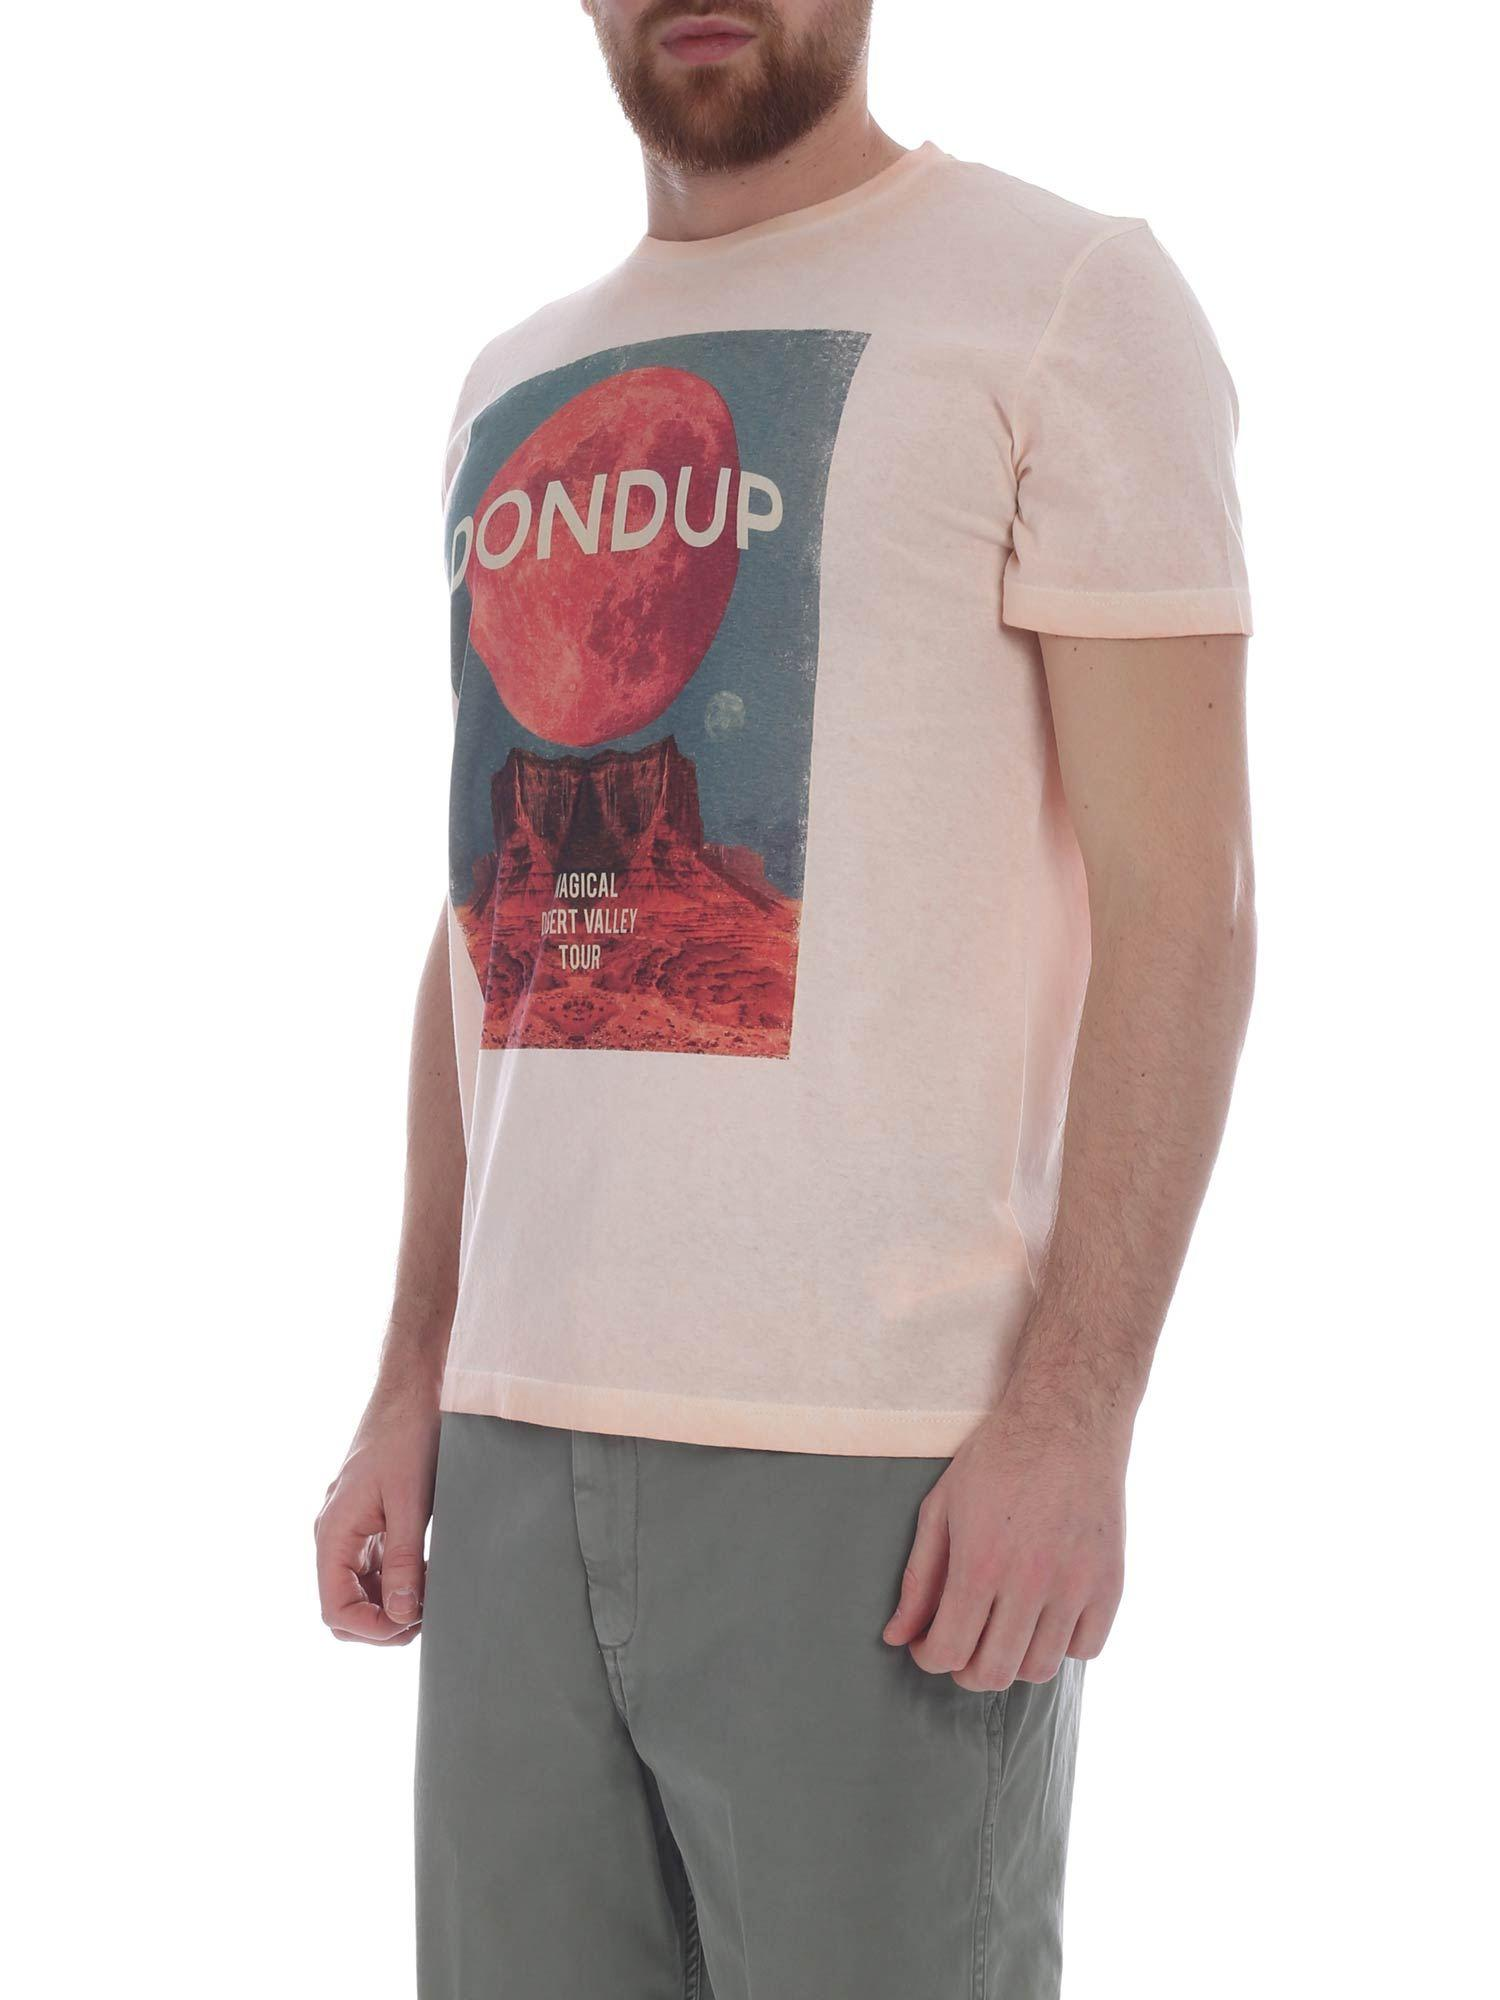 766817a3d Lyst - Dondup Pink Magical Desert Valley Tour T-shirt in Pink for Men -  Save 1%